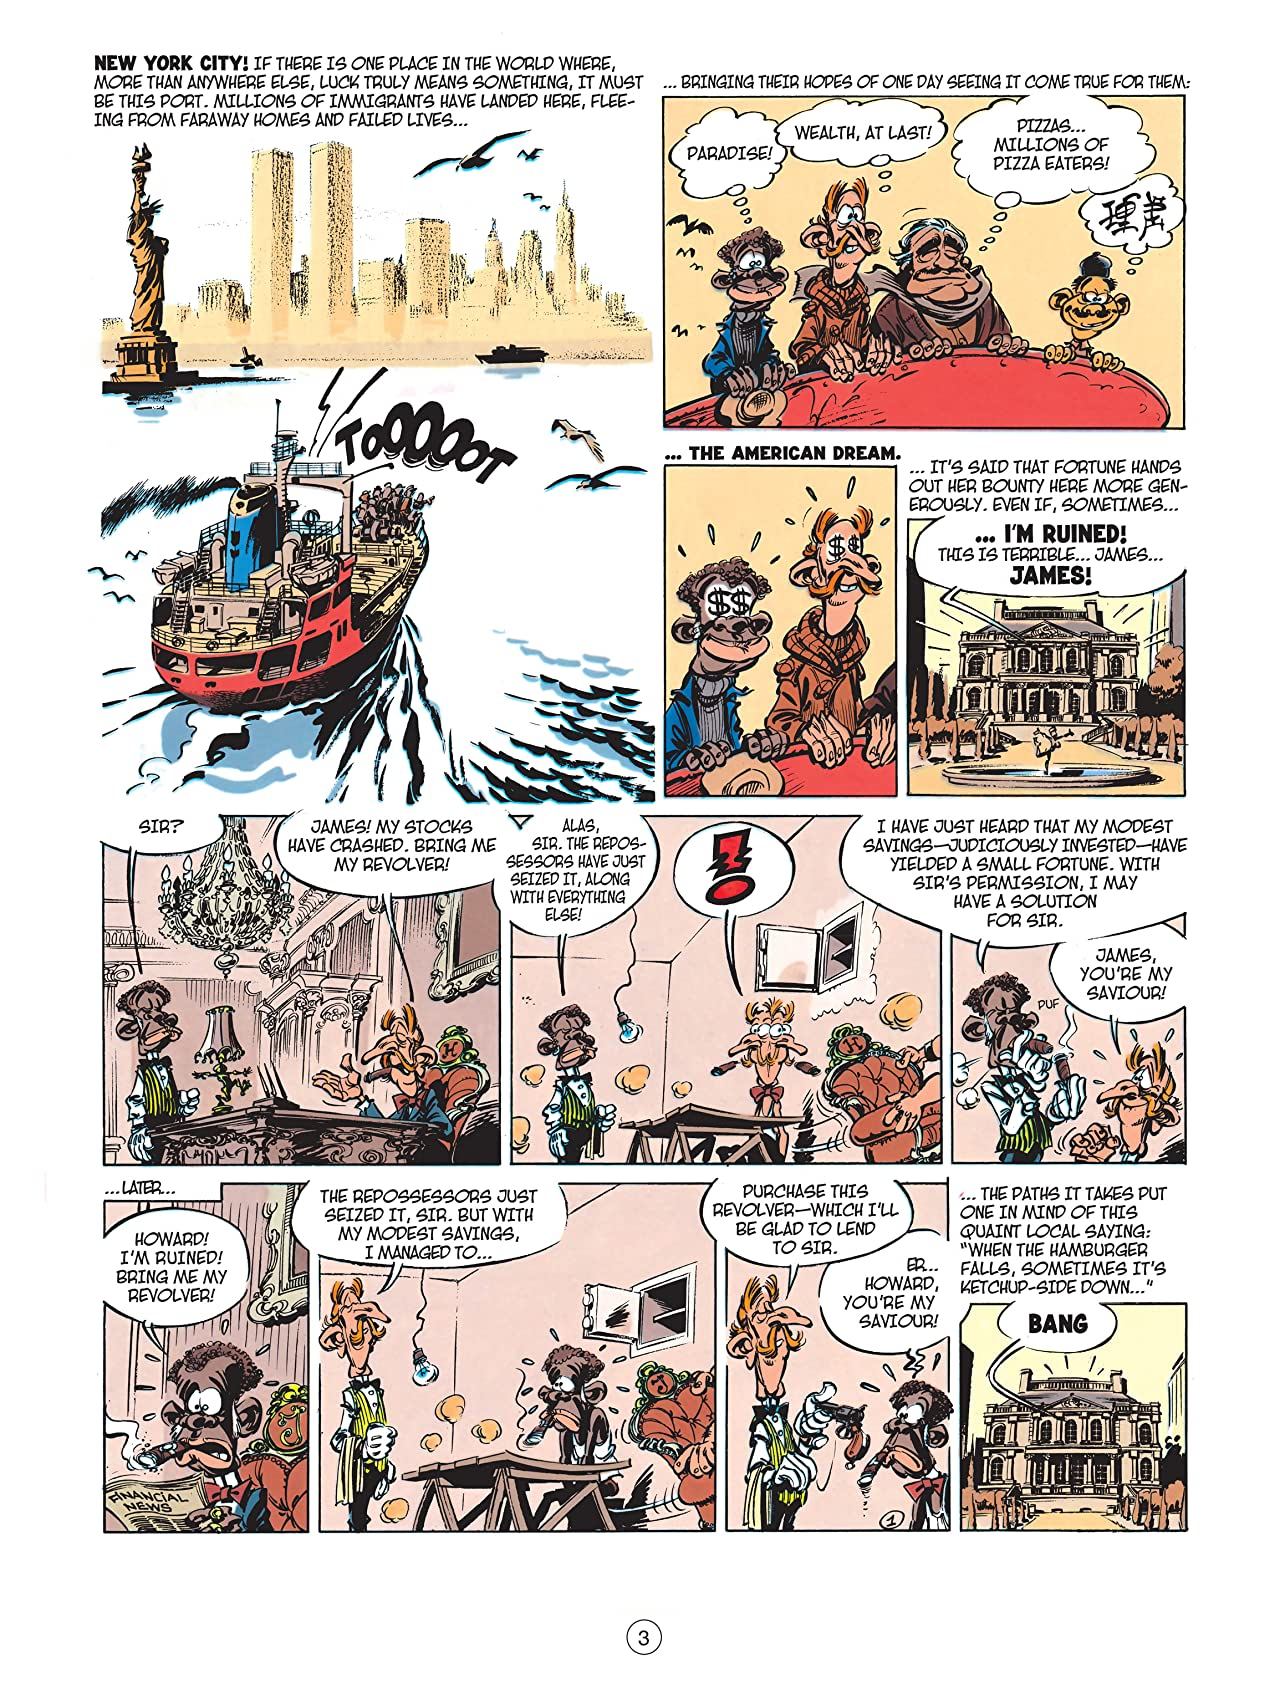 Spirou & Fantasio Vol. 2: In New York